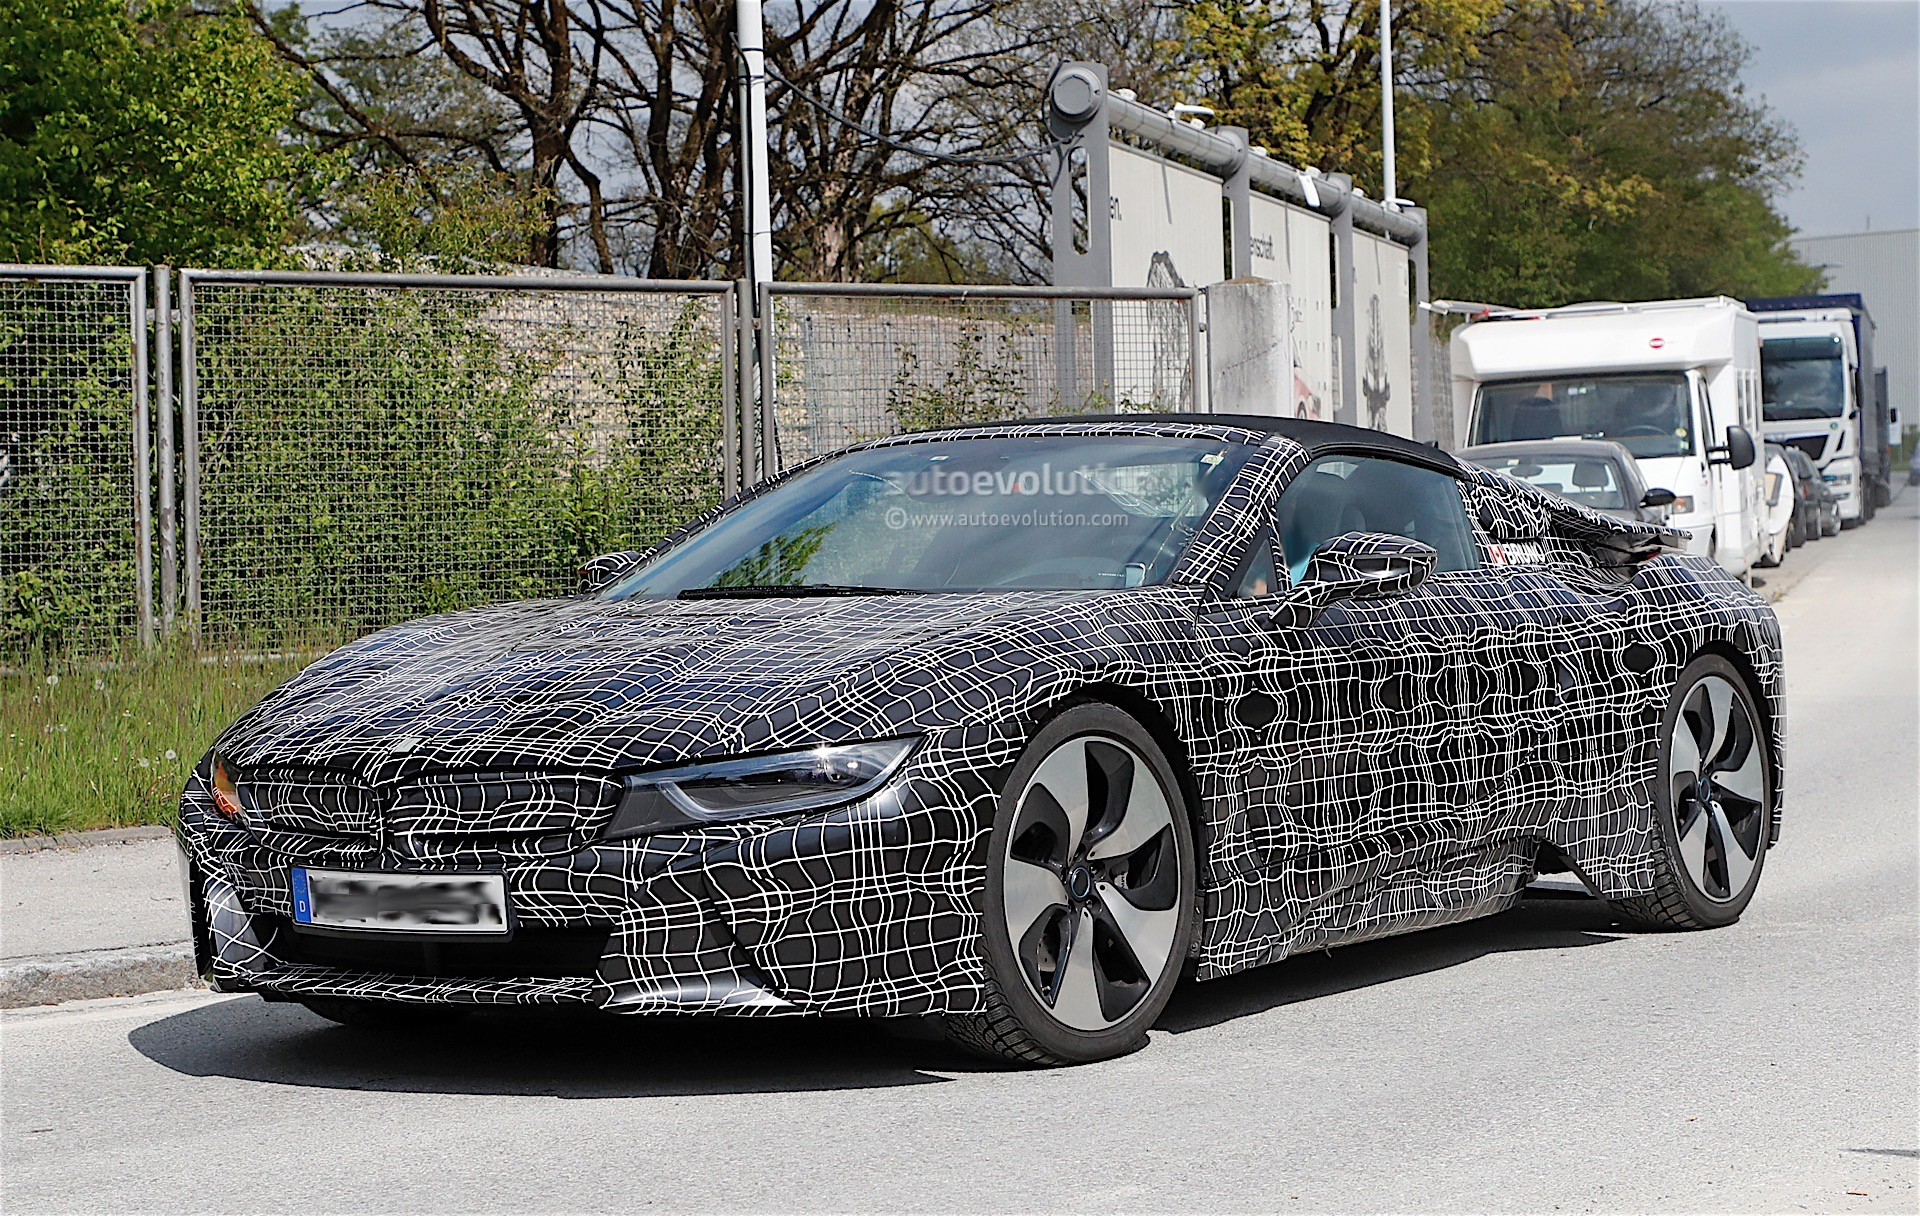 2018 BMW i8 Spyder Prototype Spied, Everything Looks Ready For Production - autoevolution